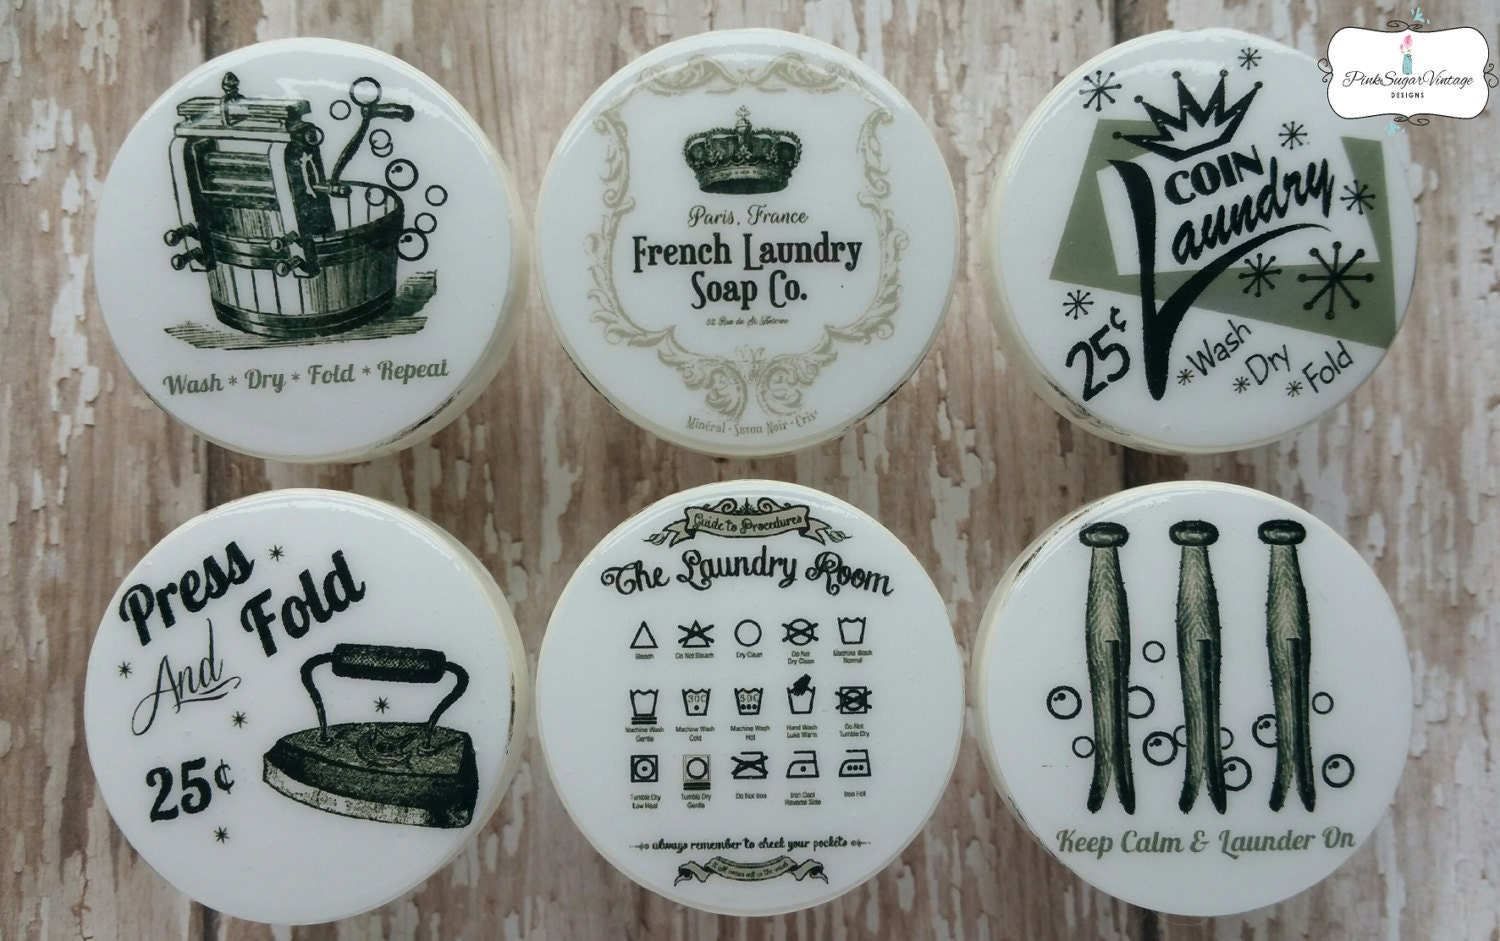 LAUNDRY ROOM KNOBS 2 Drawer Pulls Vintage Look Paris France